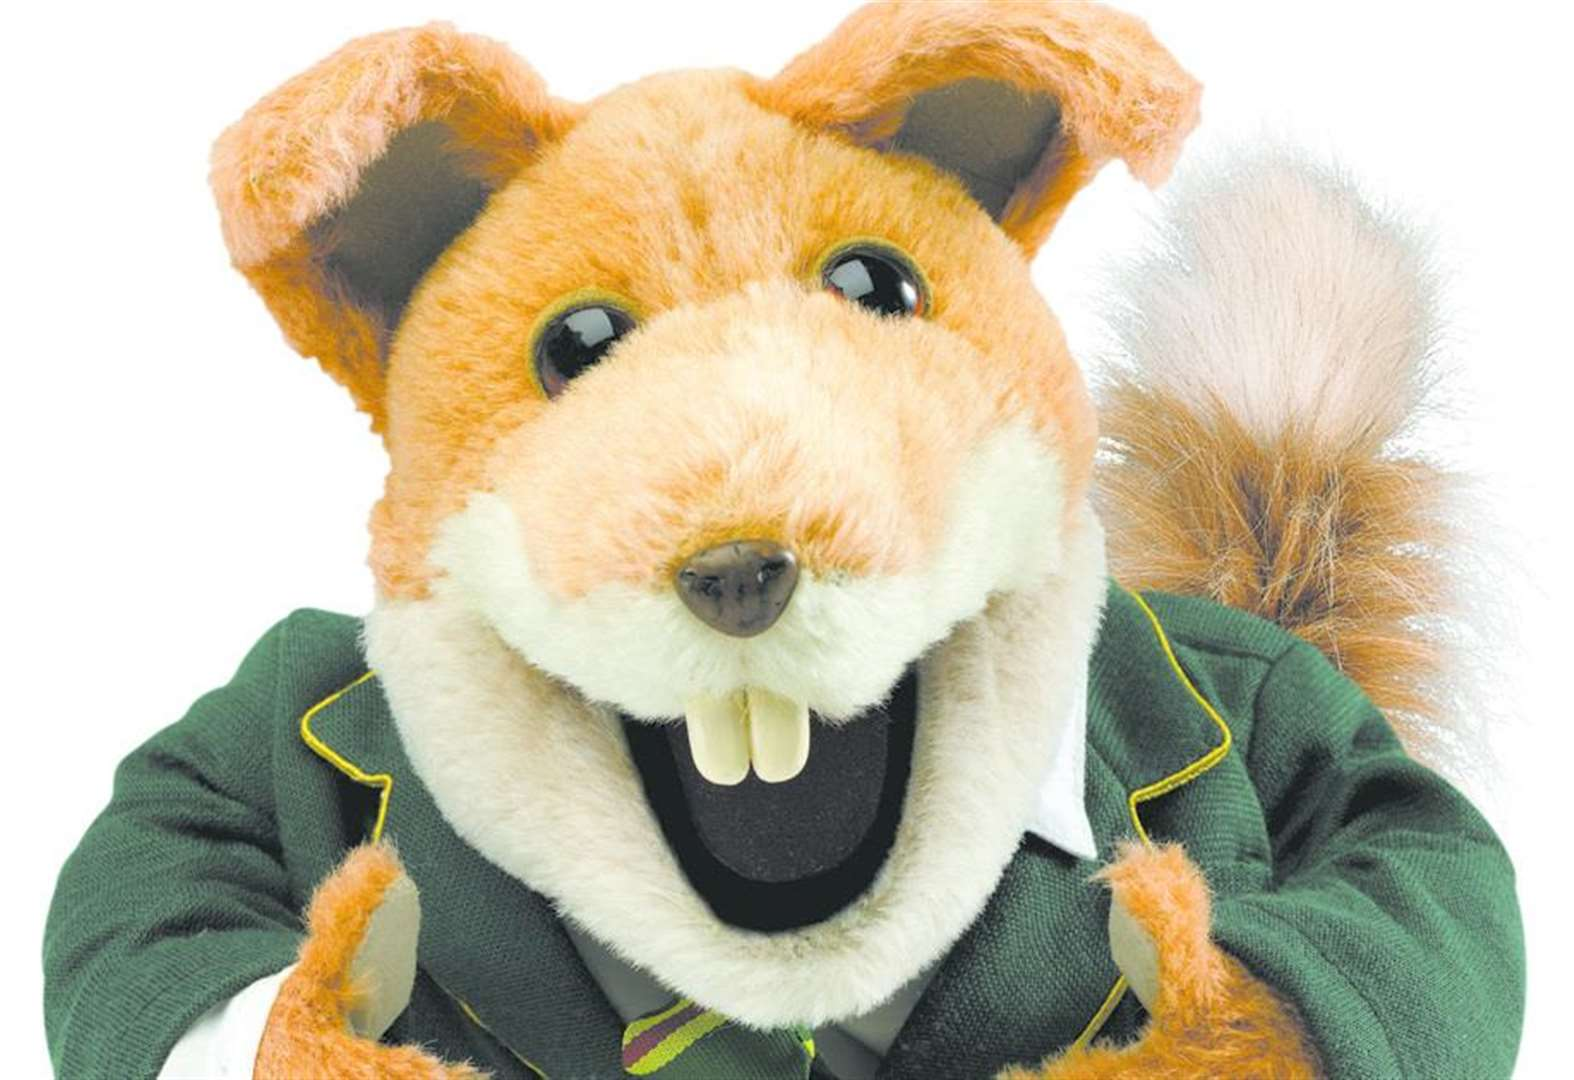 Watch out X Factor - here comes Basil Brush